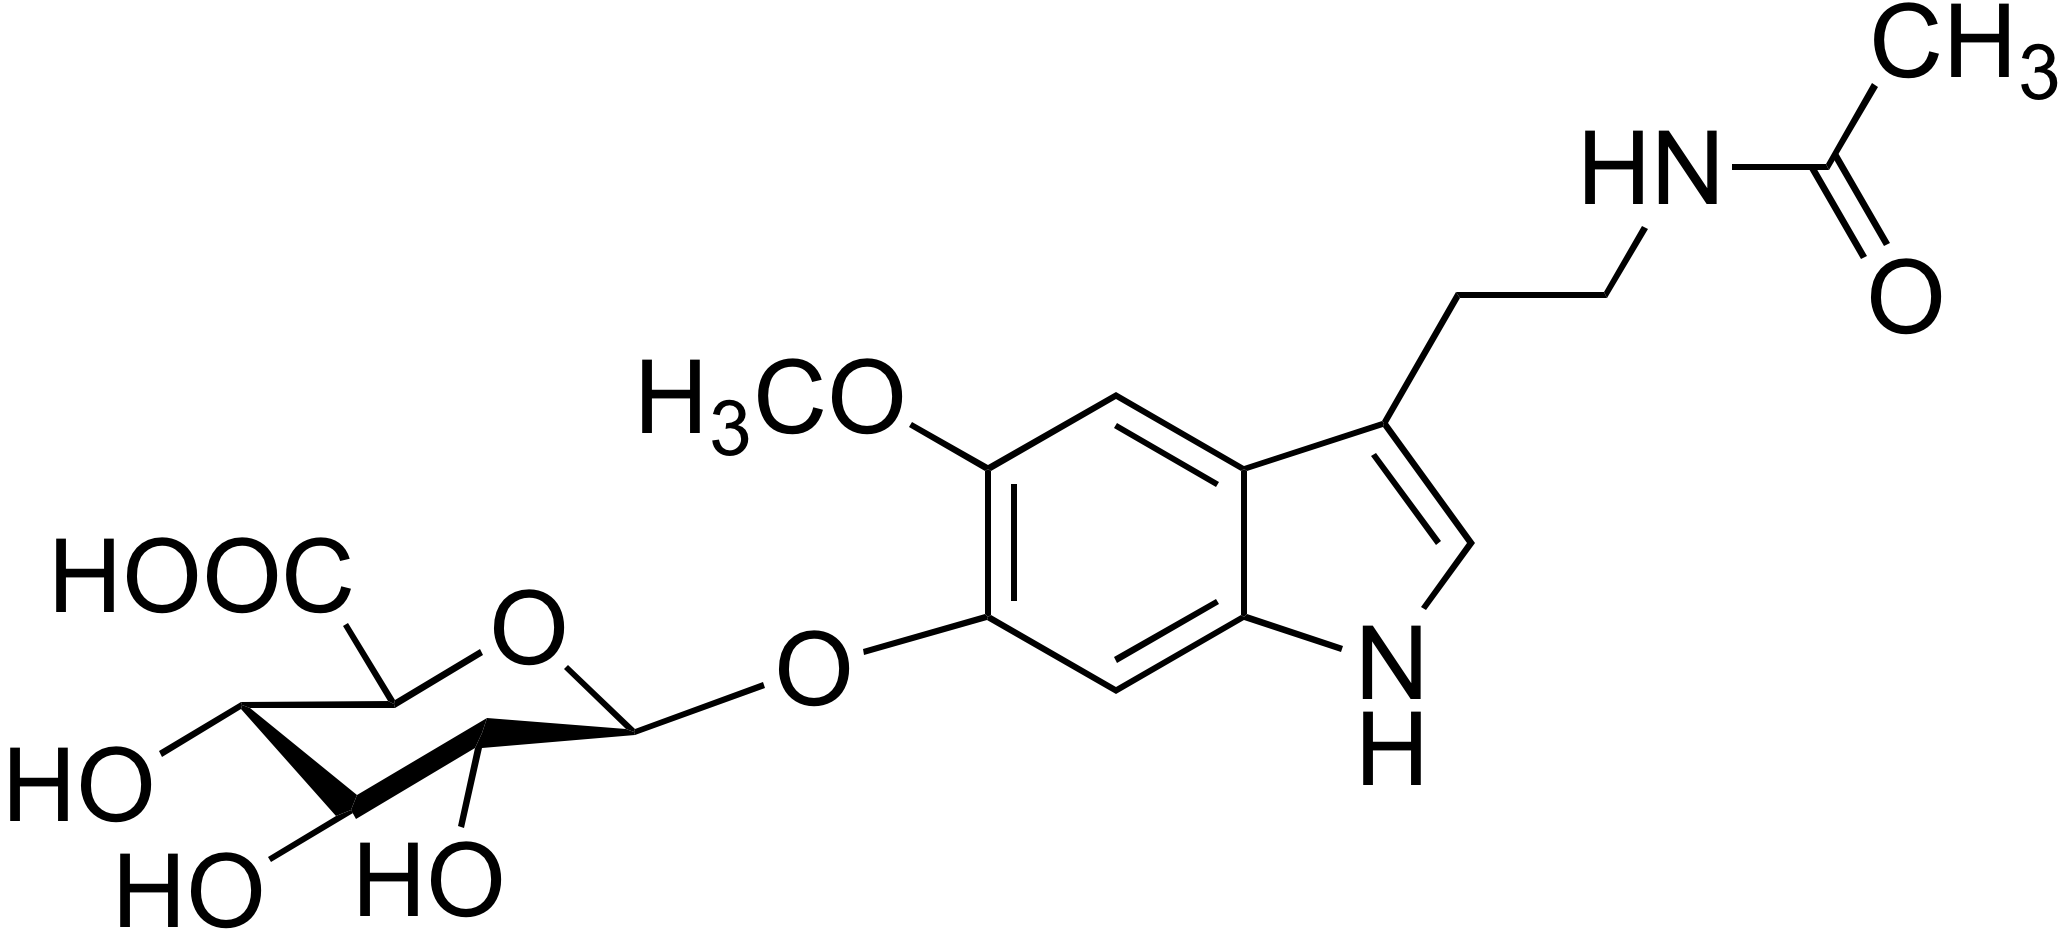 6-Hydroxymelatonin β-D-glucuronide